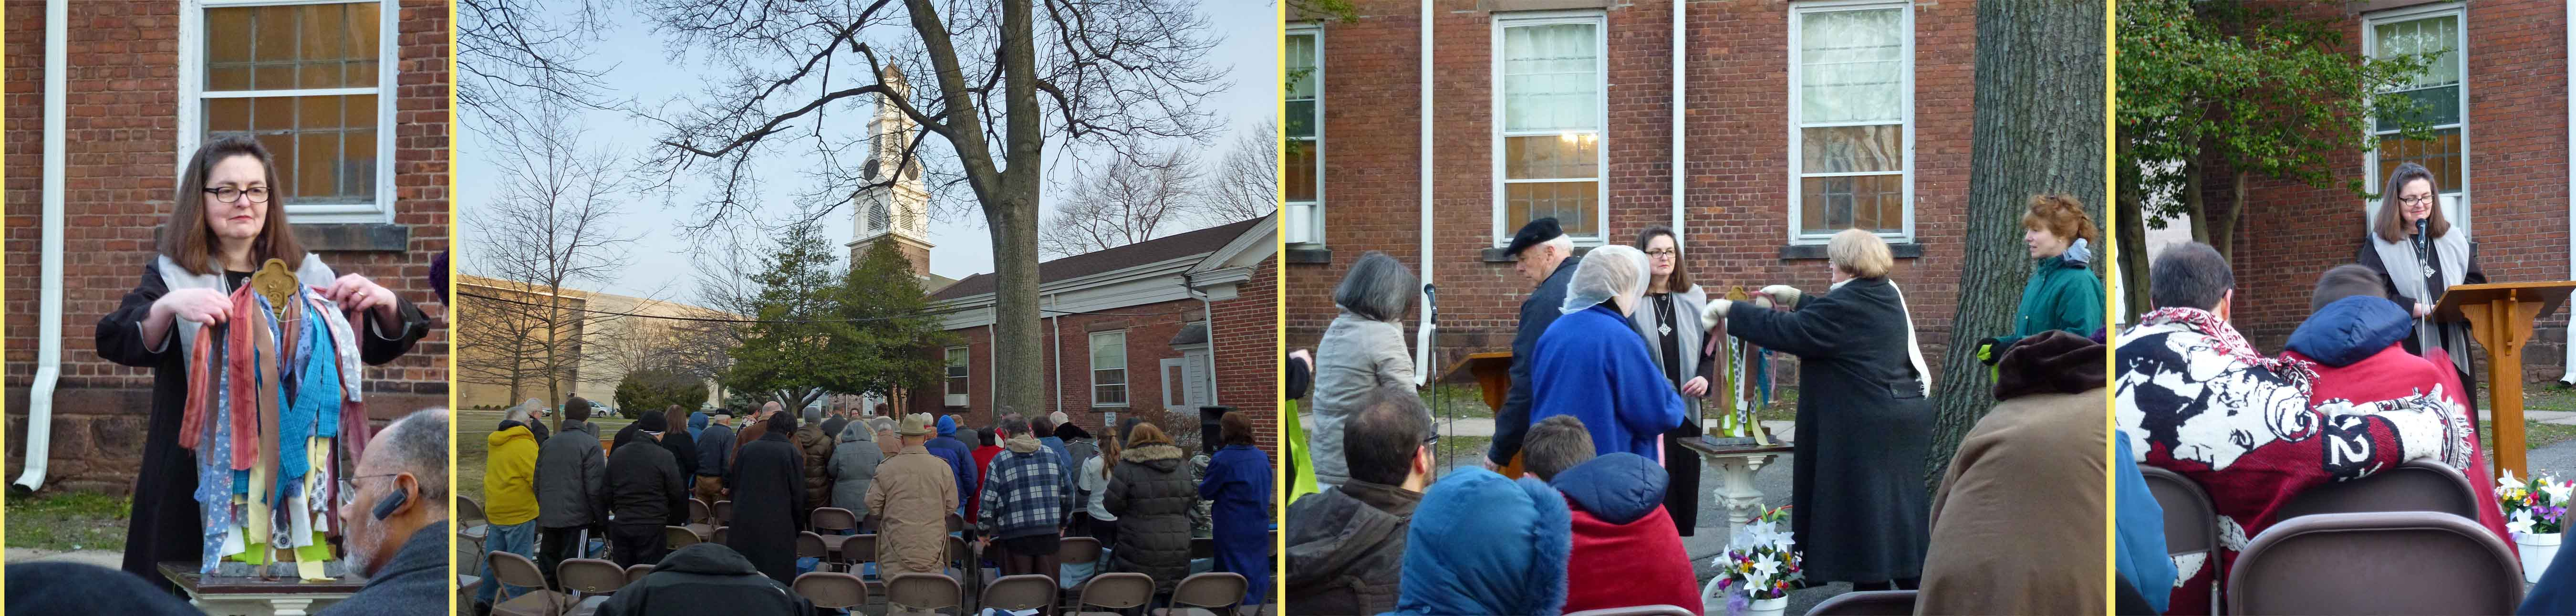 Easter Sunrise Service at the Bloomfield Presbyterian Church on the Green